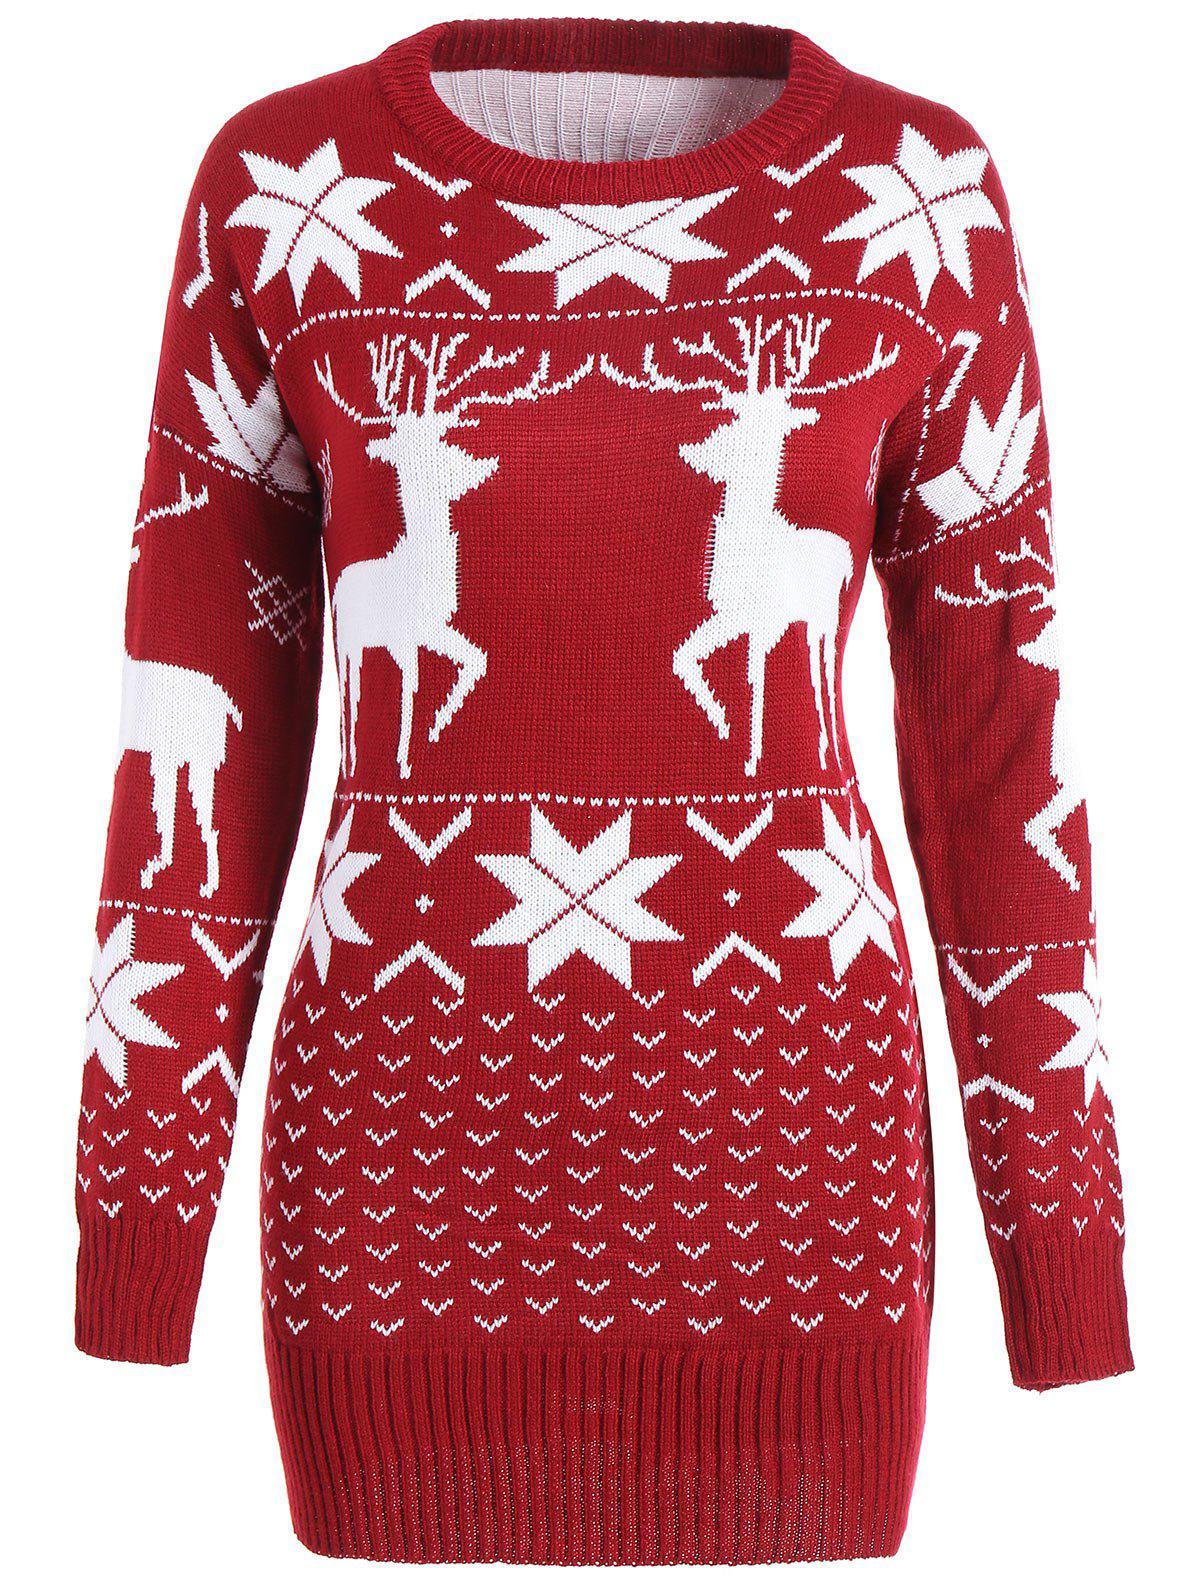 2018 Maple Leaf Deer Tunic Christmas Sweater WINE RED ONE SIZE In ...